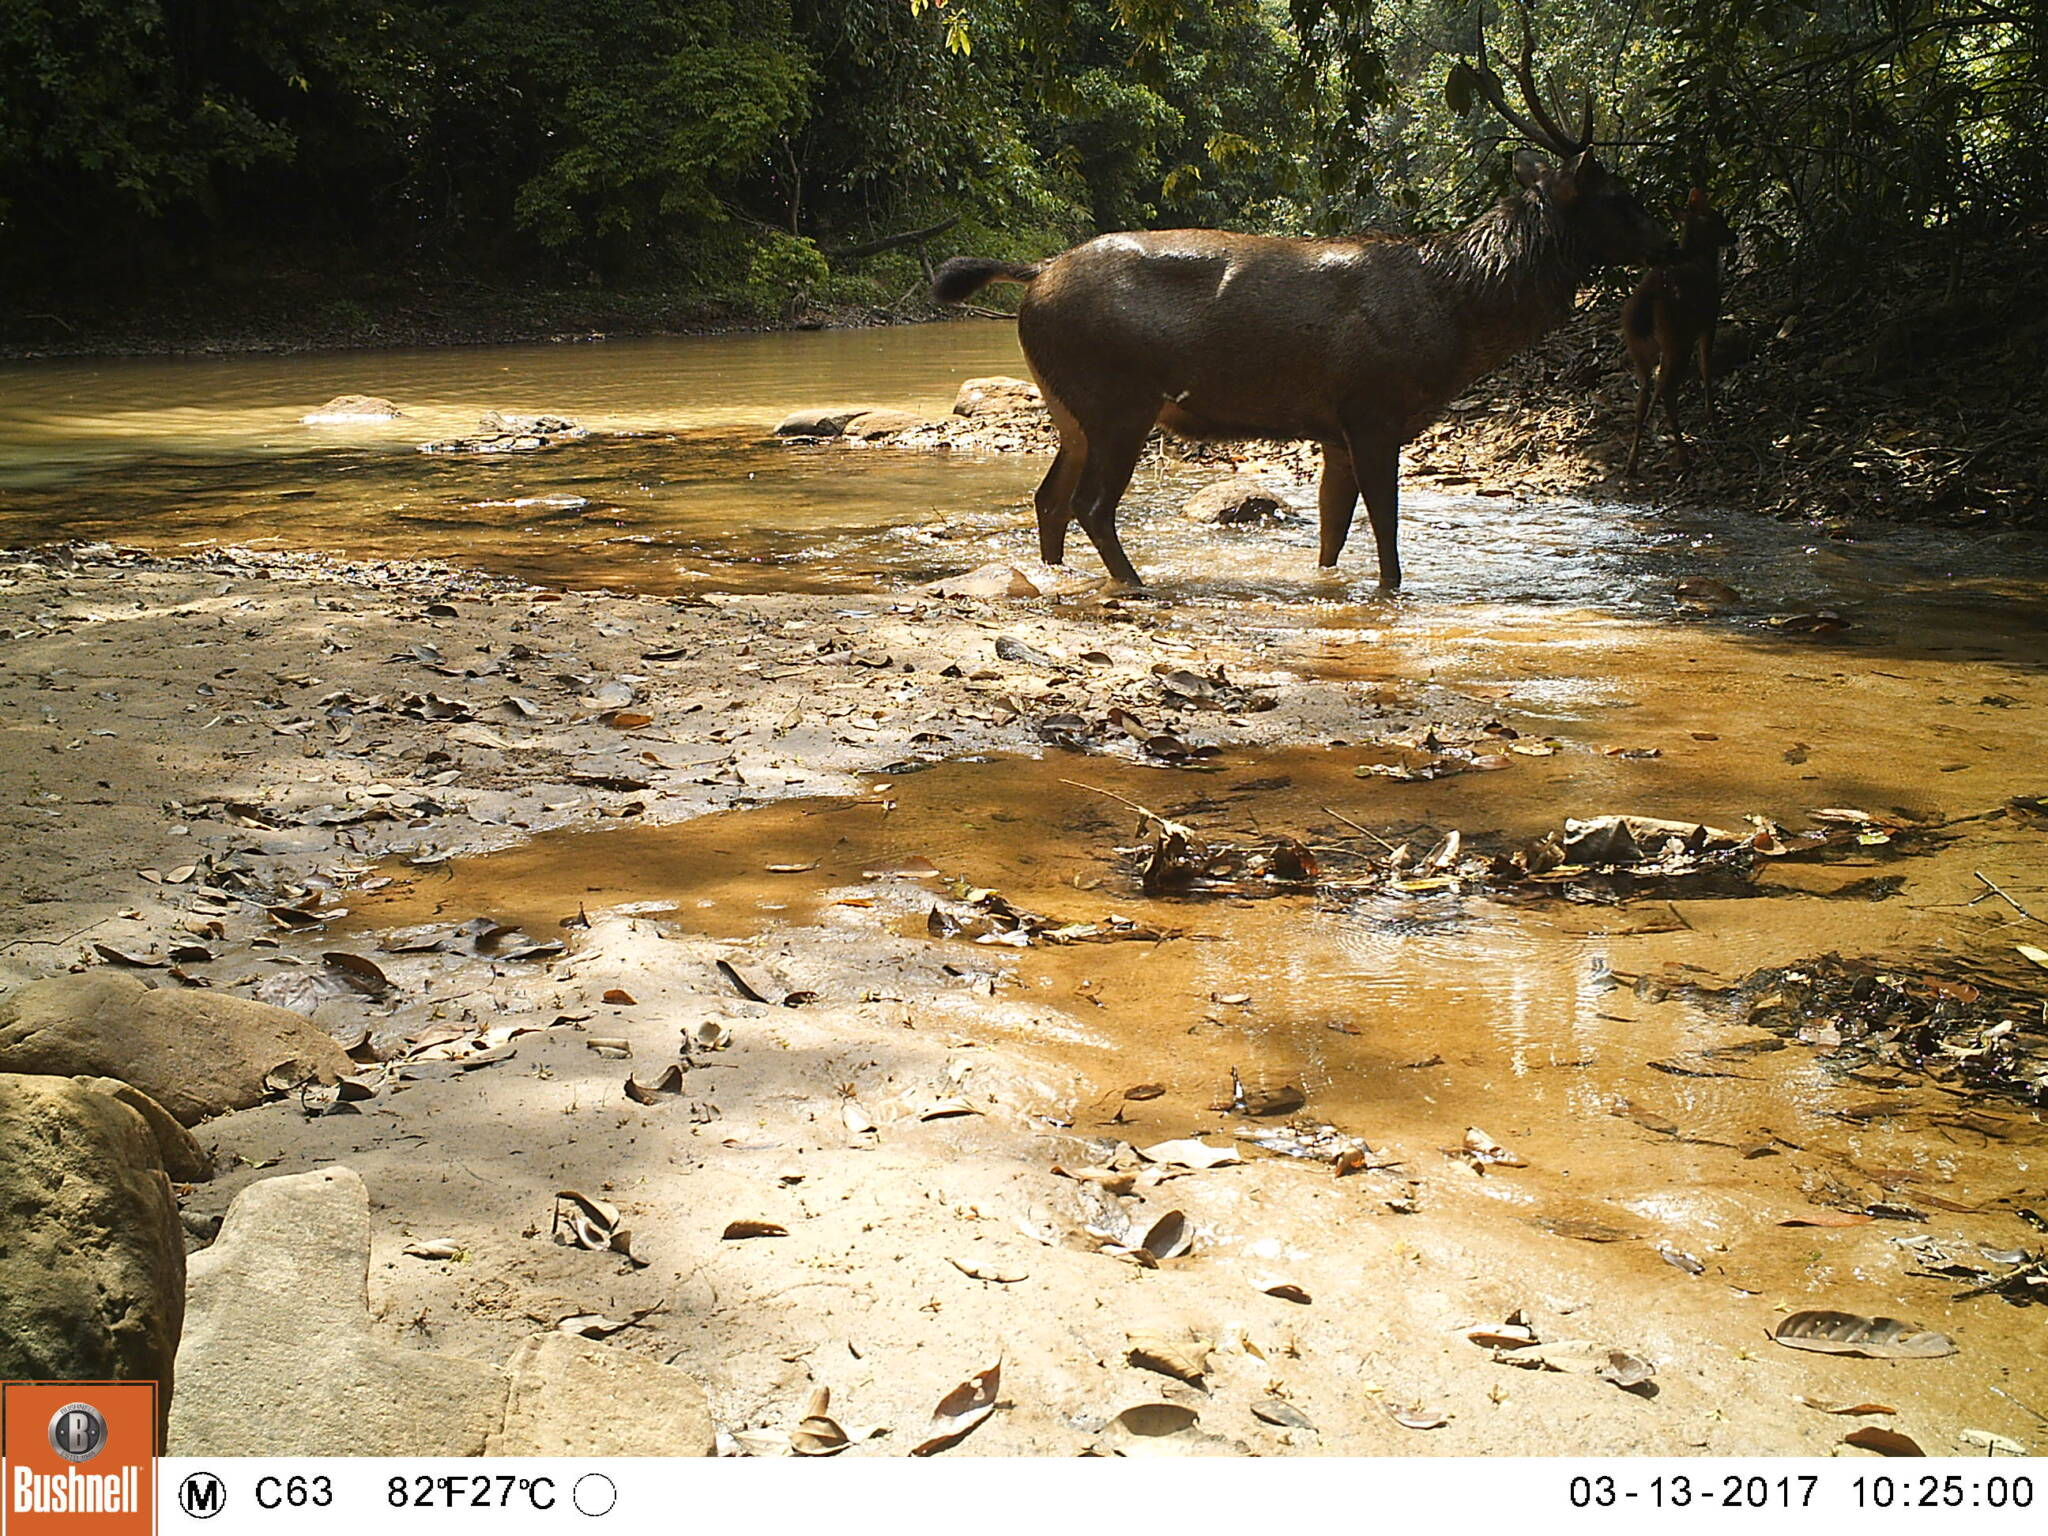 tigers cambodia Tiger Reintroduction Sambar Deer